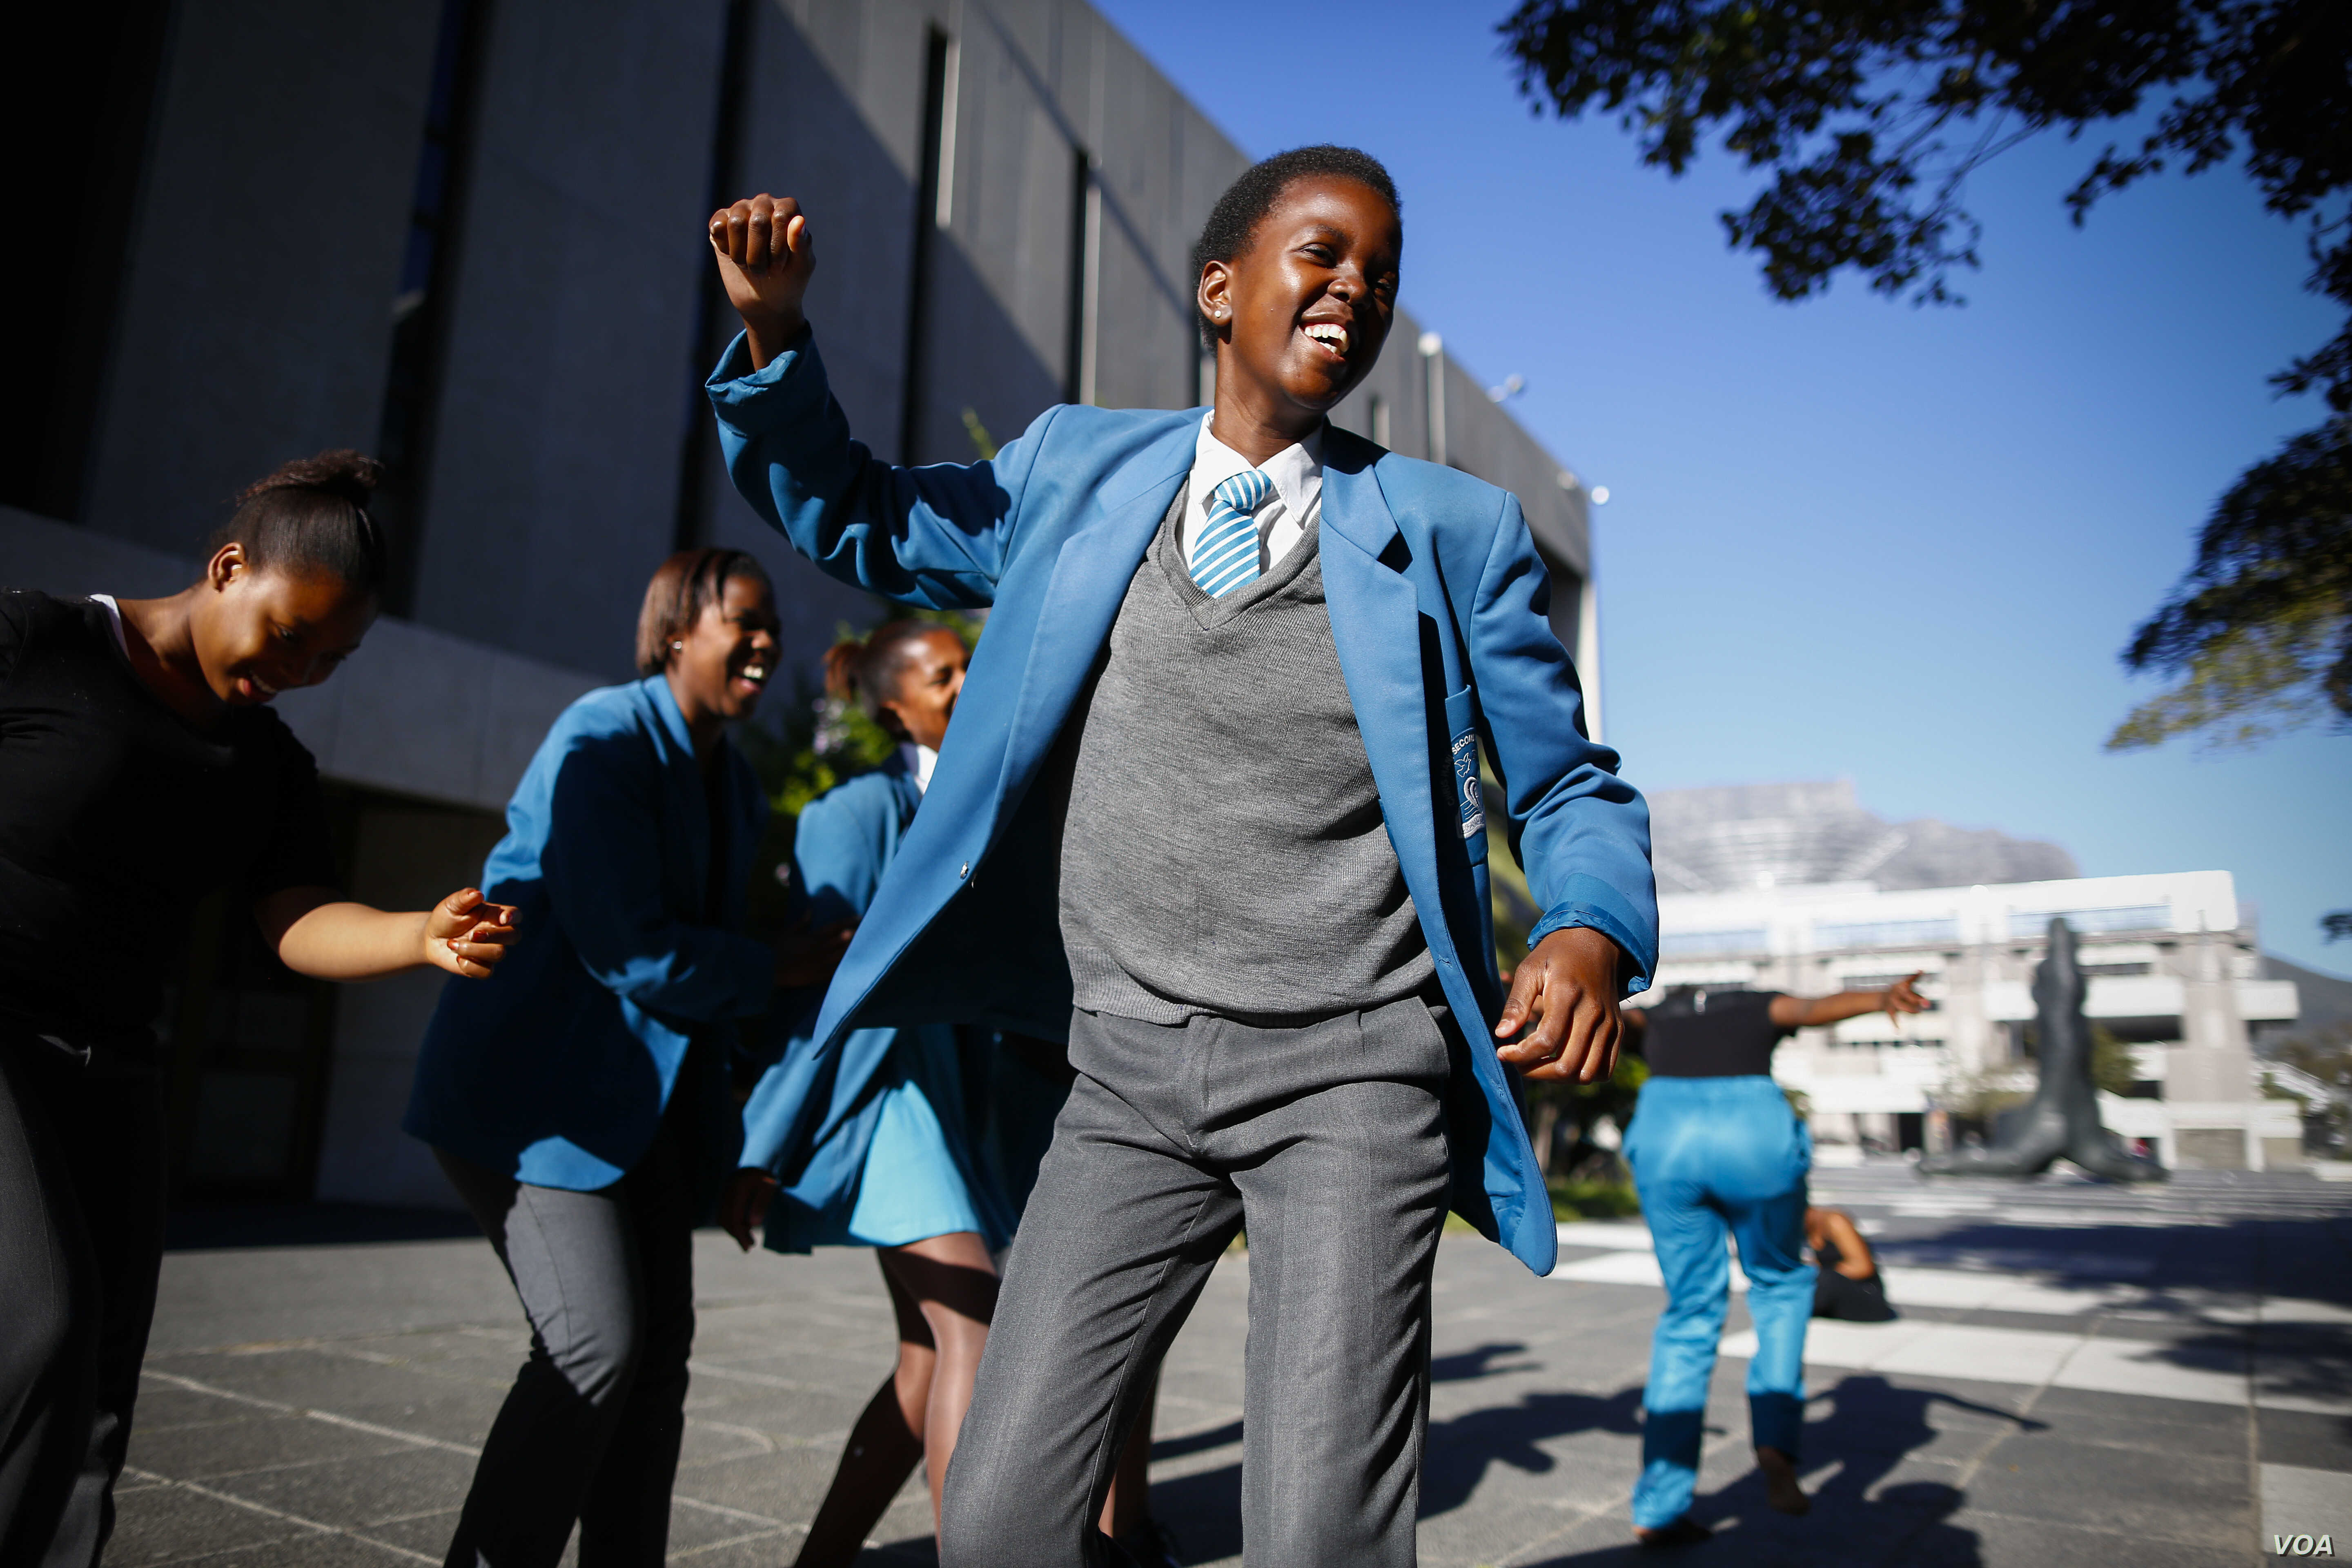 South African school children from Chris Hani High dance during Africa Day celebrations at the Artscape Theatre in Cape Town, South Africa, 25 May 2016.